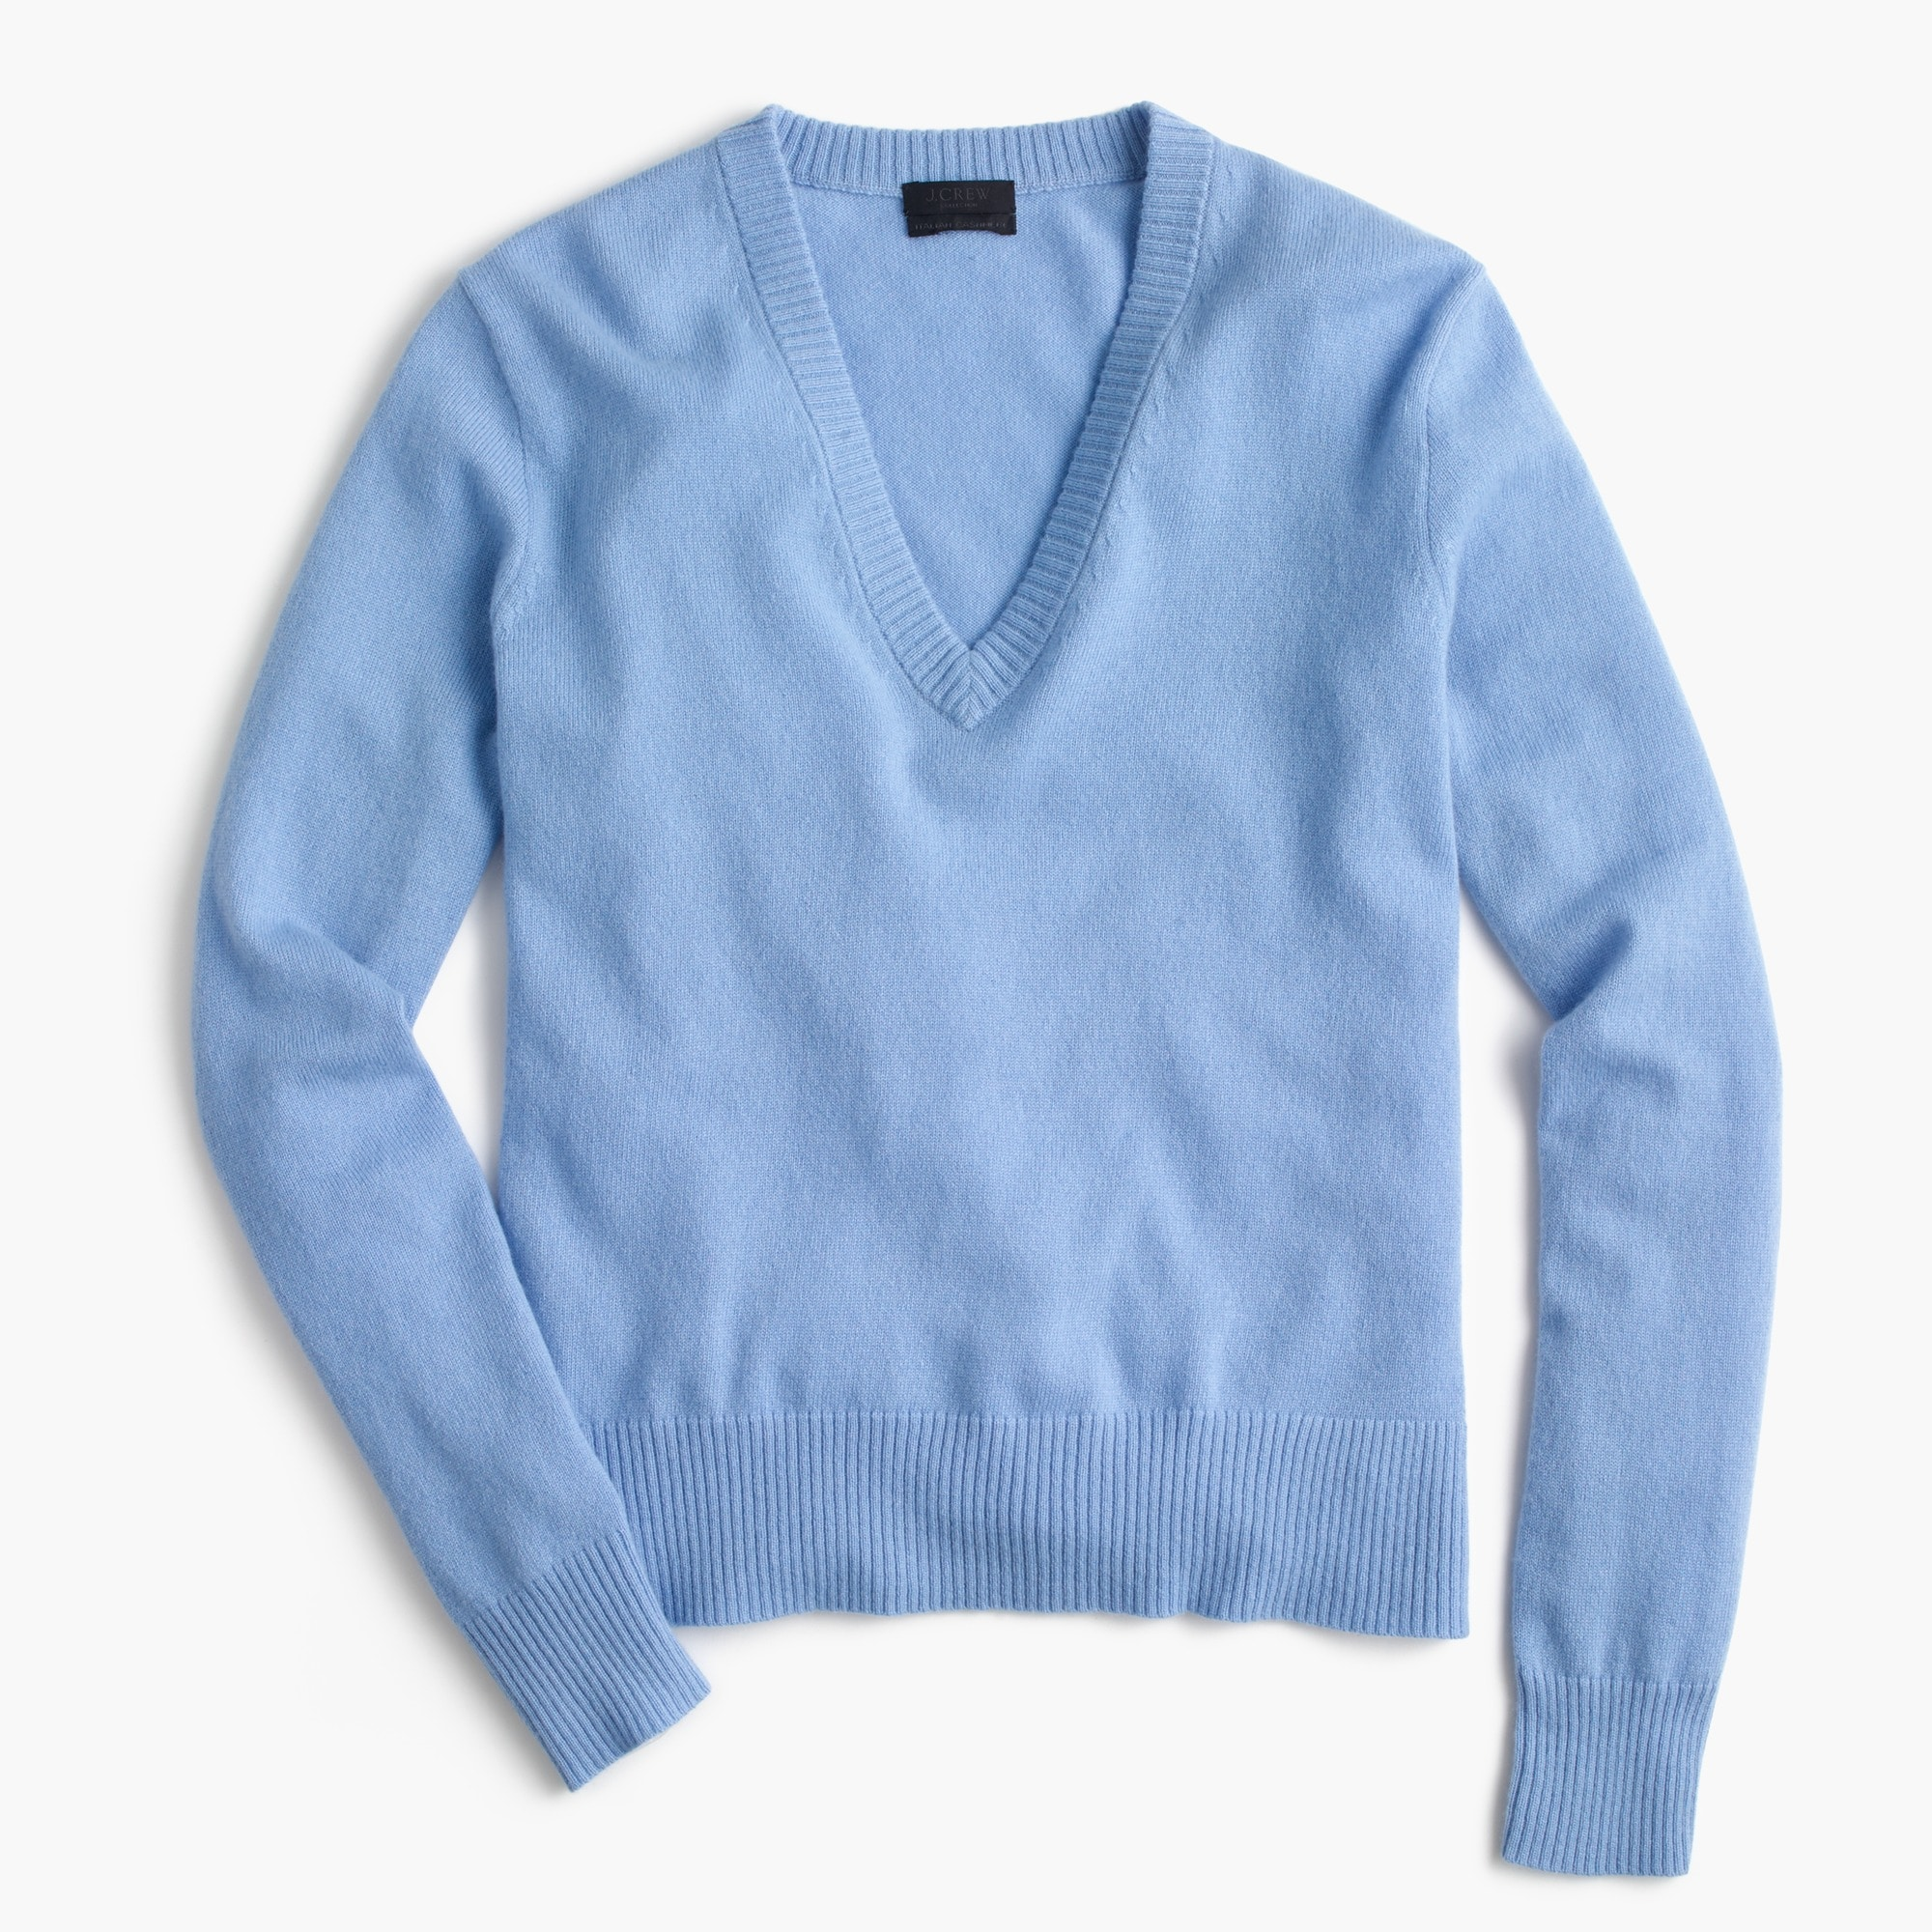 Italian cashmere easy V-neck sweater